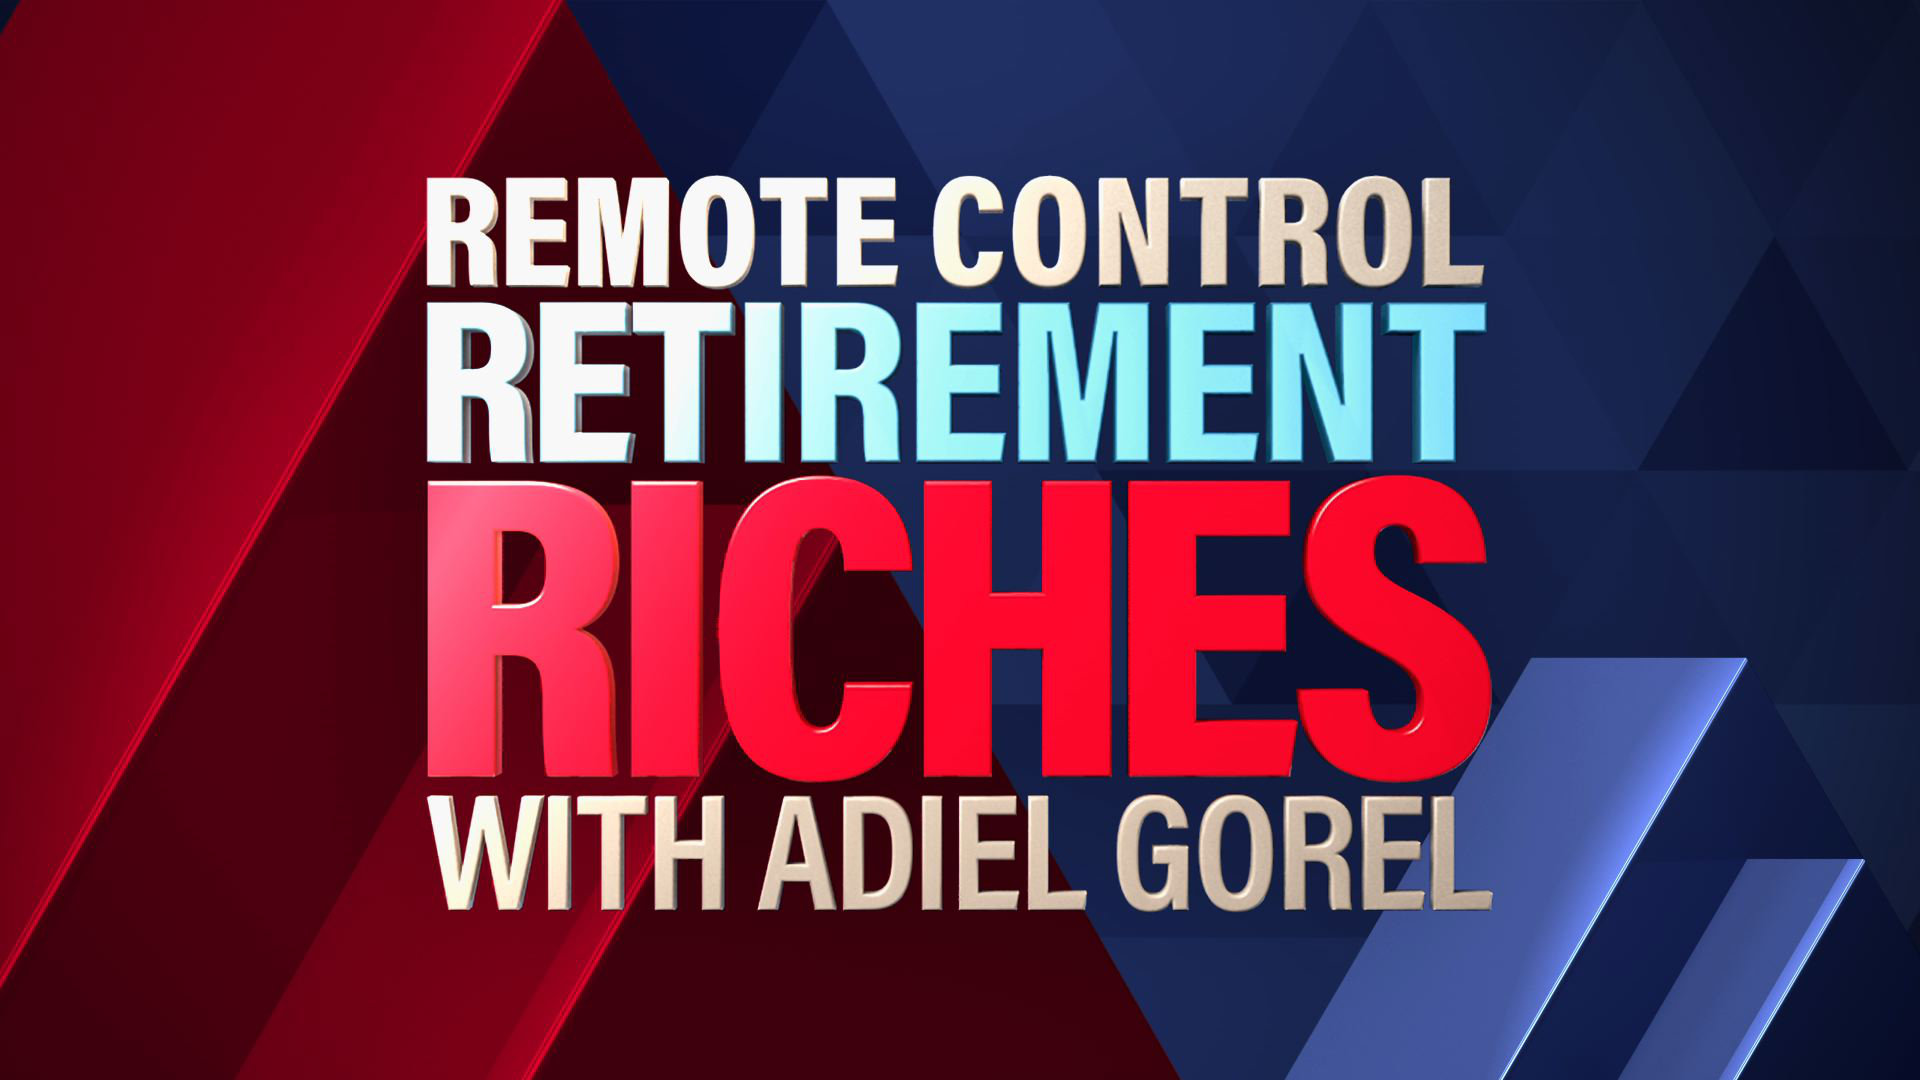 Remote Control Retirement Riches with Adiel Gorel